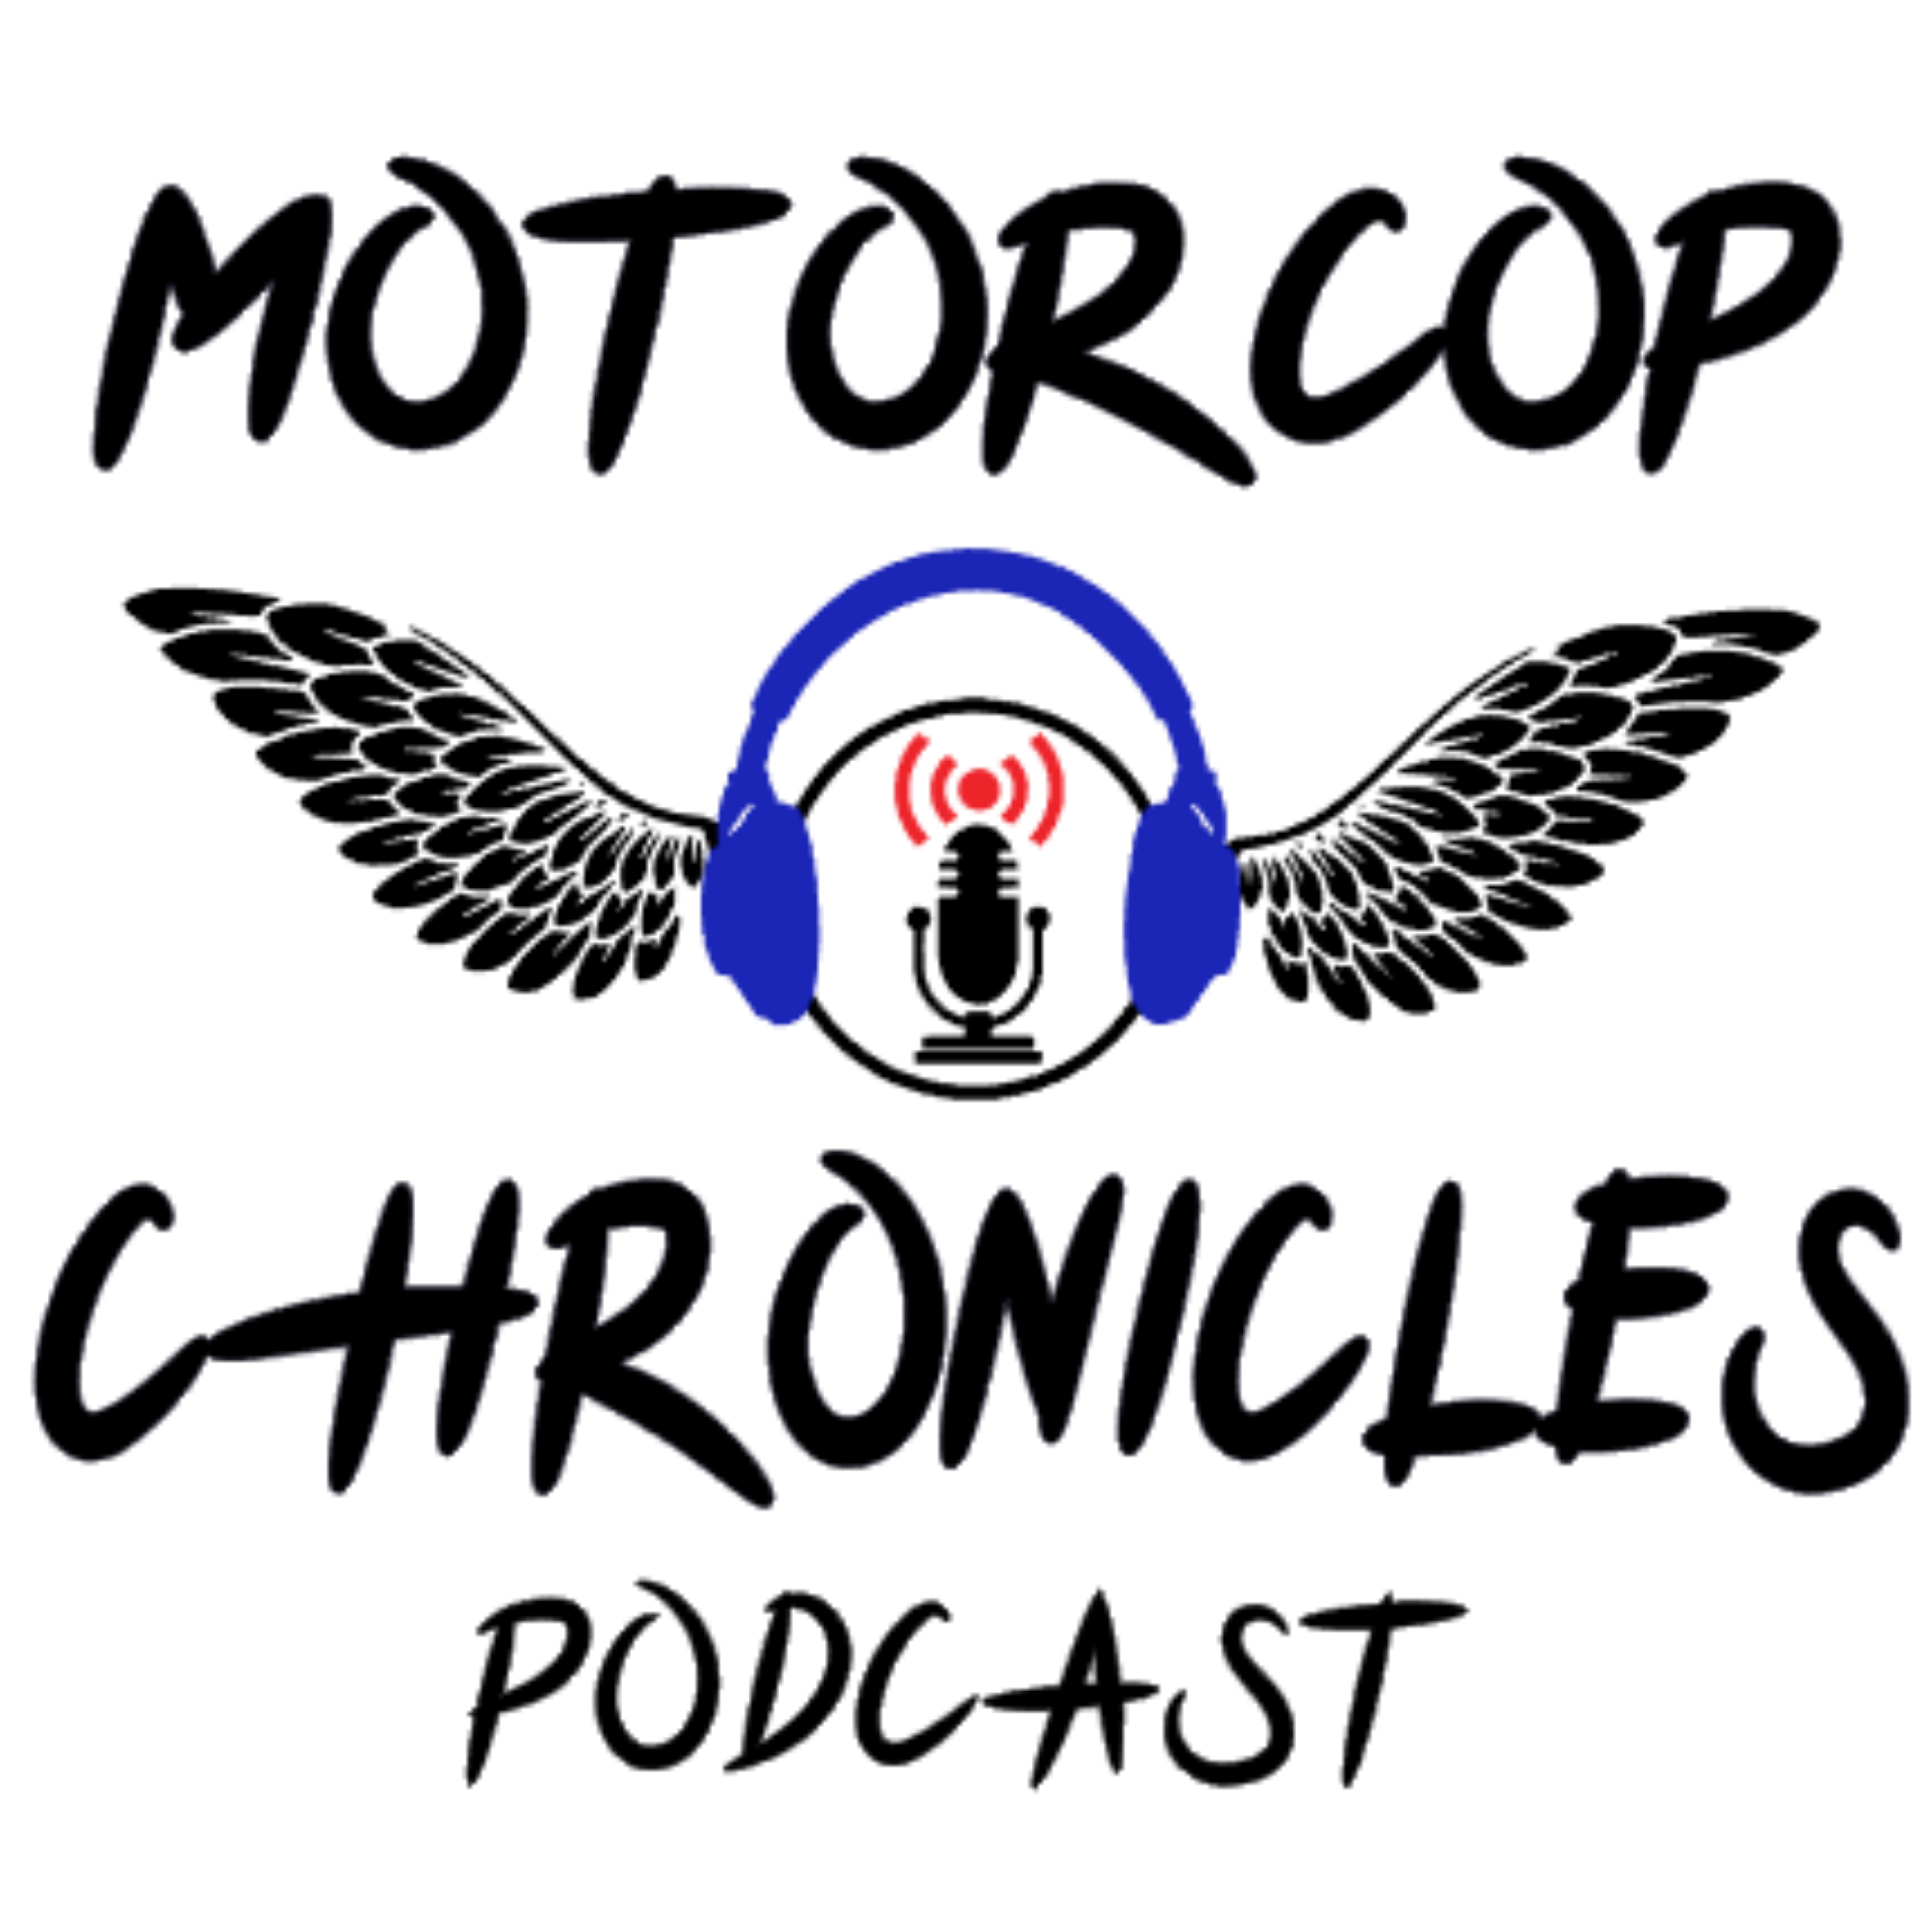 Motorcop Chronicles Podcast